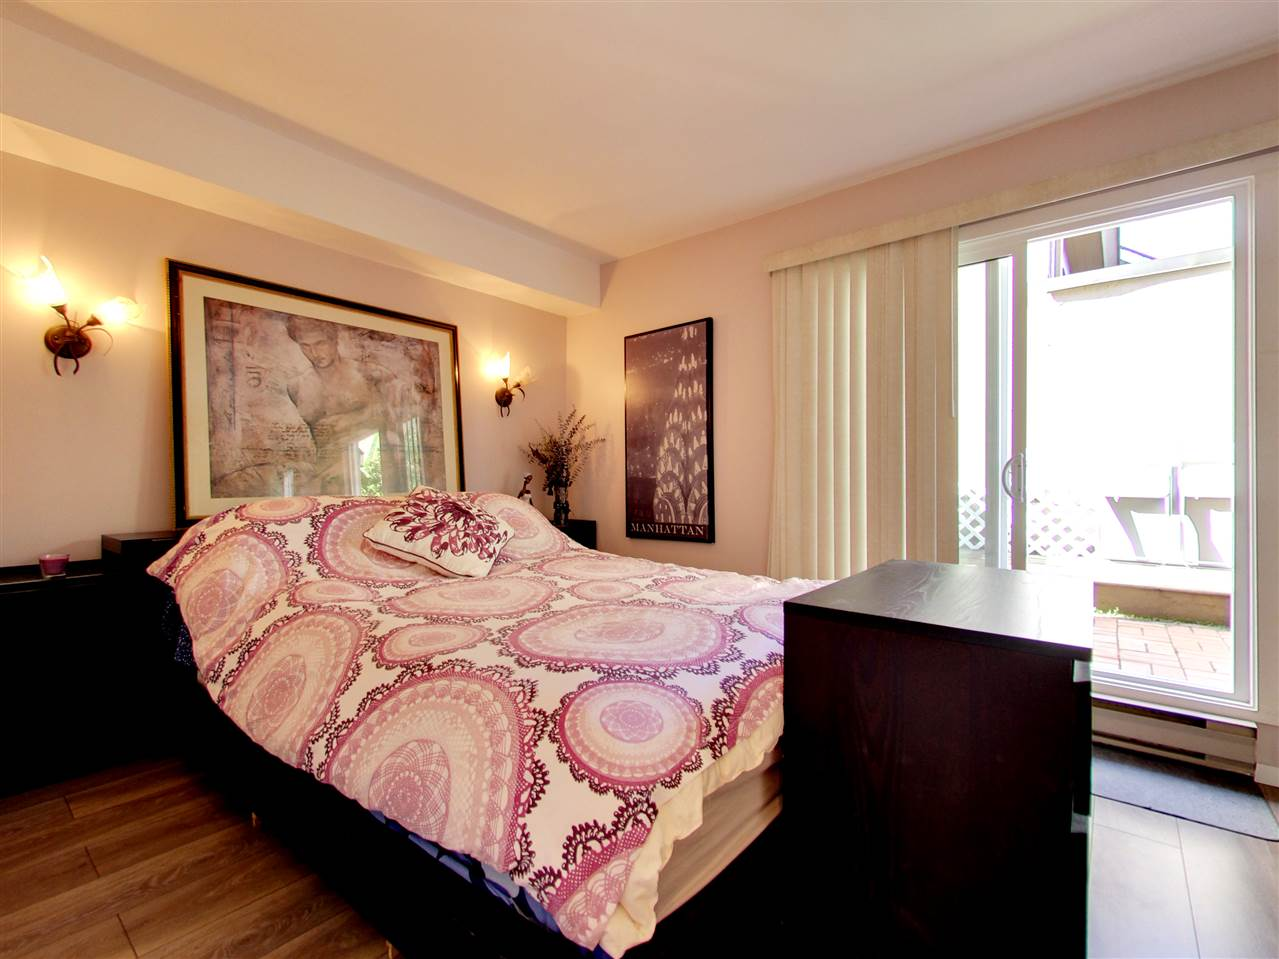 Photo 7: 2309 ALDER STREET in Vancouver: Fairview VW Condo for sale (Vancouver West)  : MLS(r) # R2115607